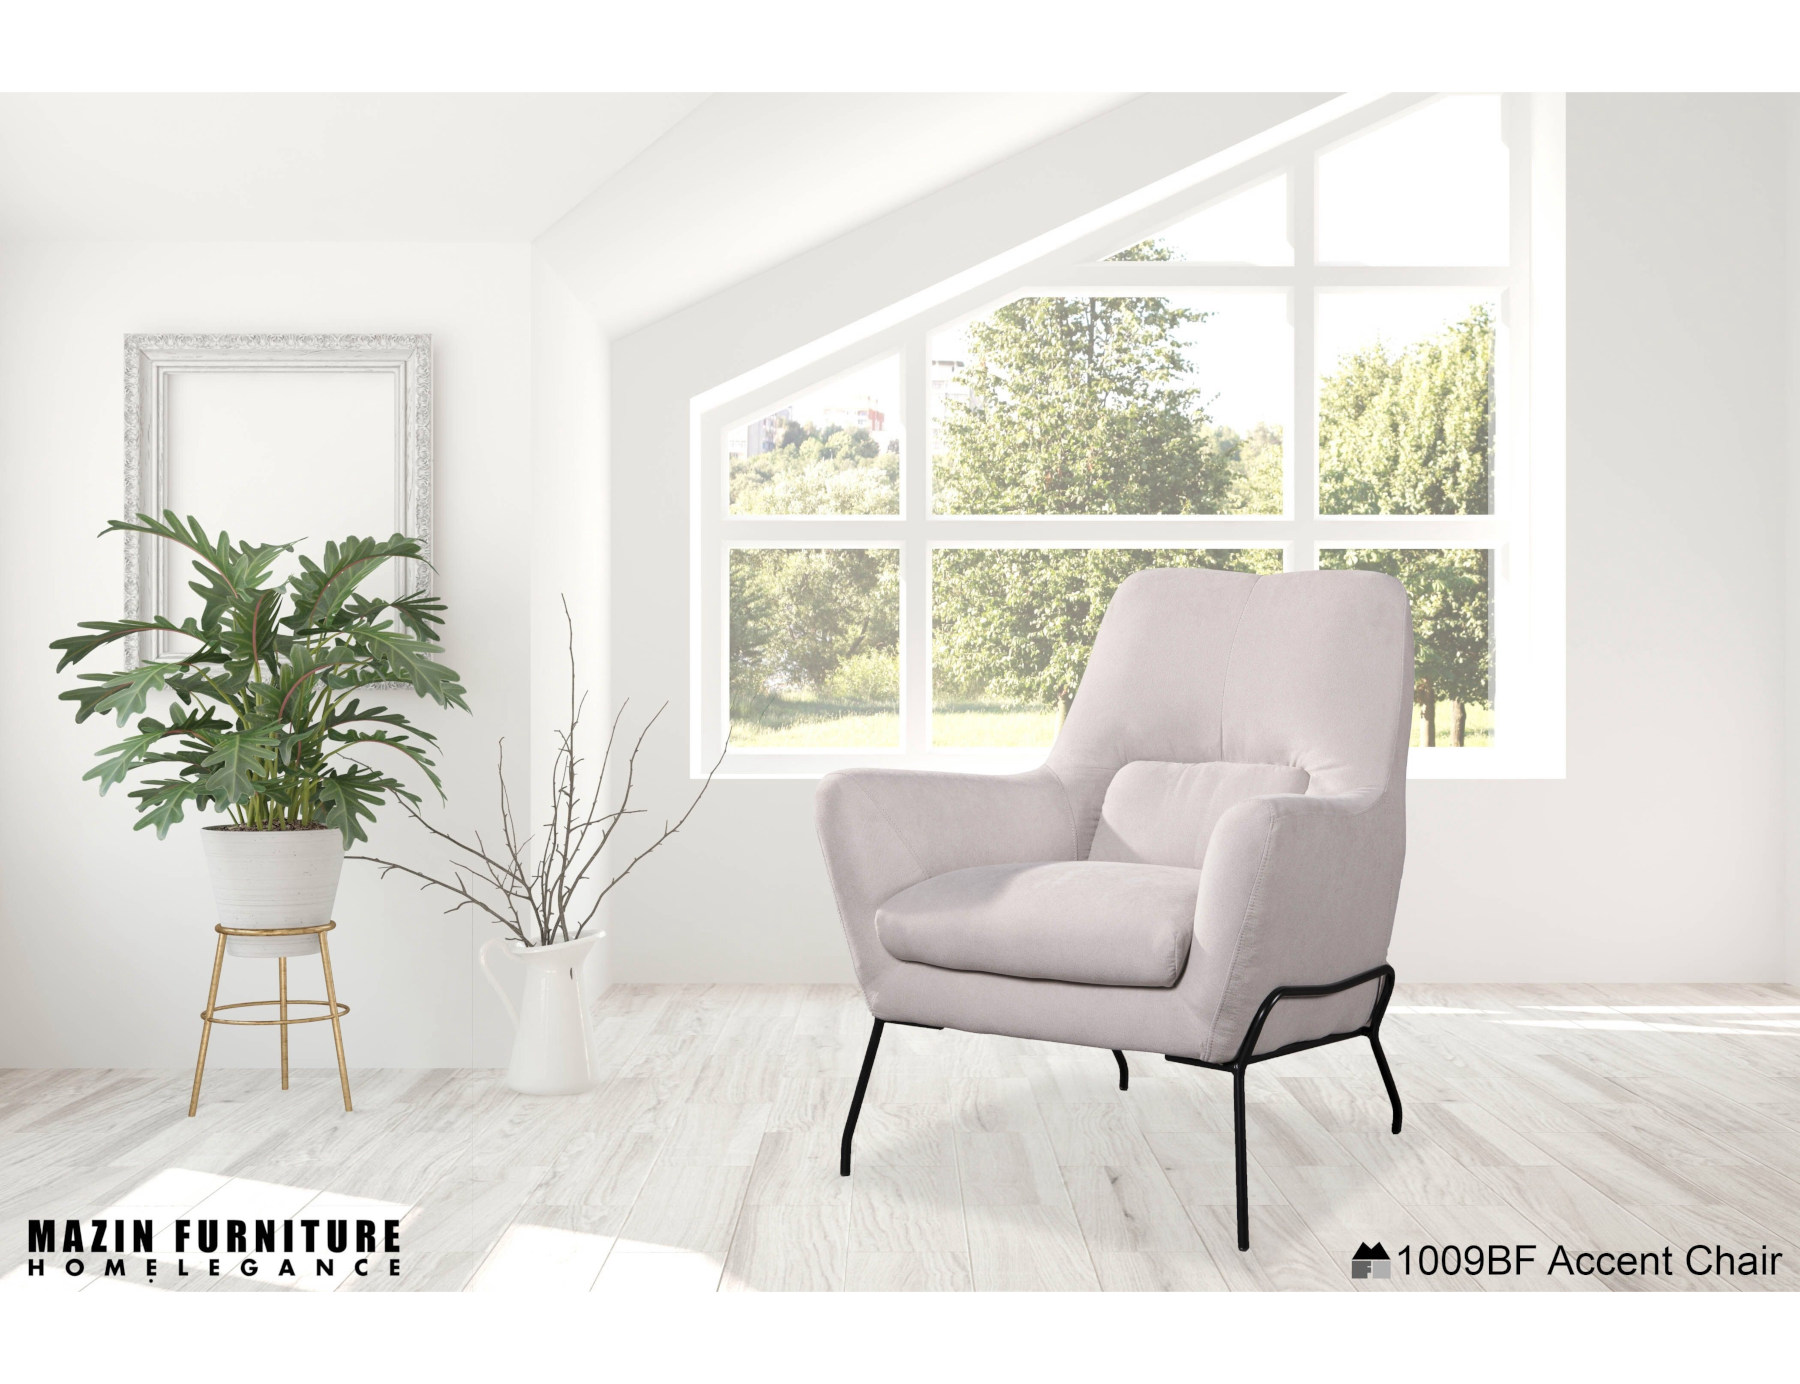 23658 – Accent Chair – MF-1009